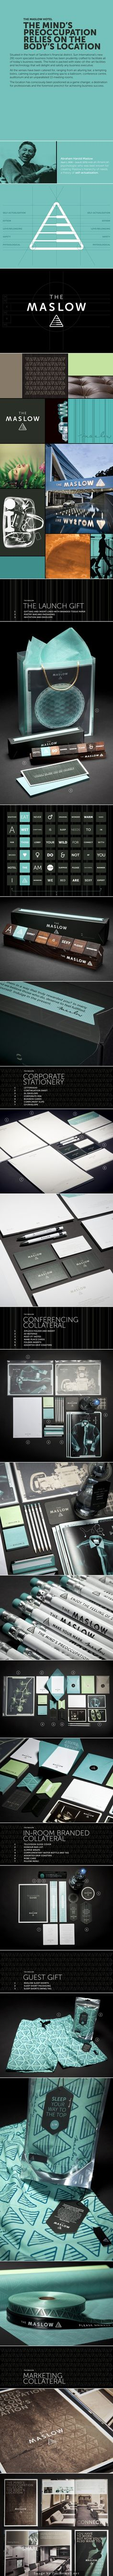 A real beauty The Maslow Hotel #identity #packaging #branding Part 1 curated by Packaging Diva PD created via created via https://www.behance.net/gallery/The-Maslow-Hotel/9943403